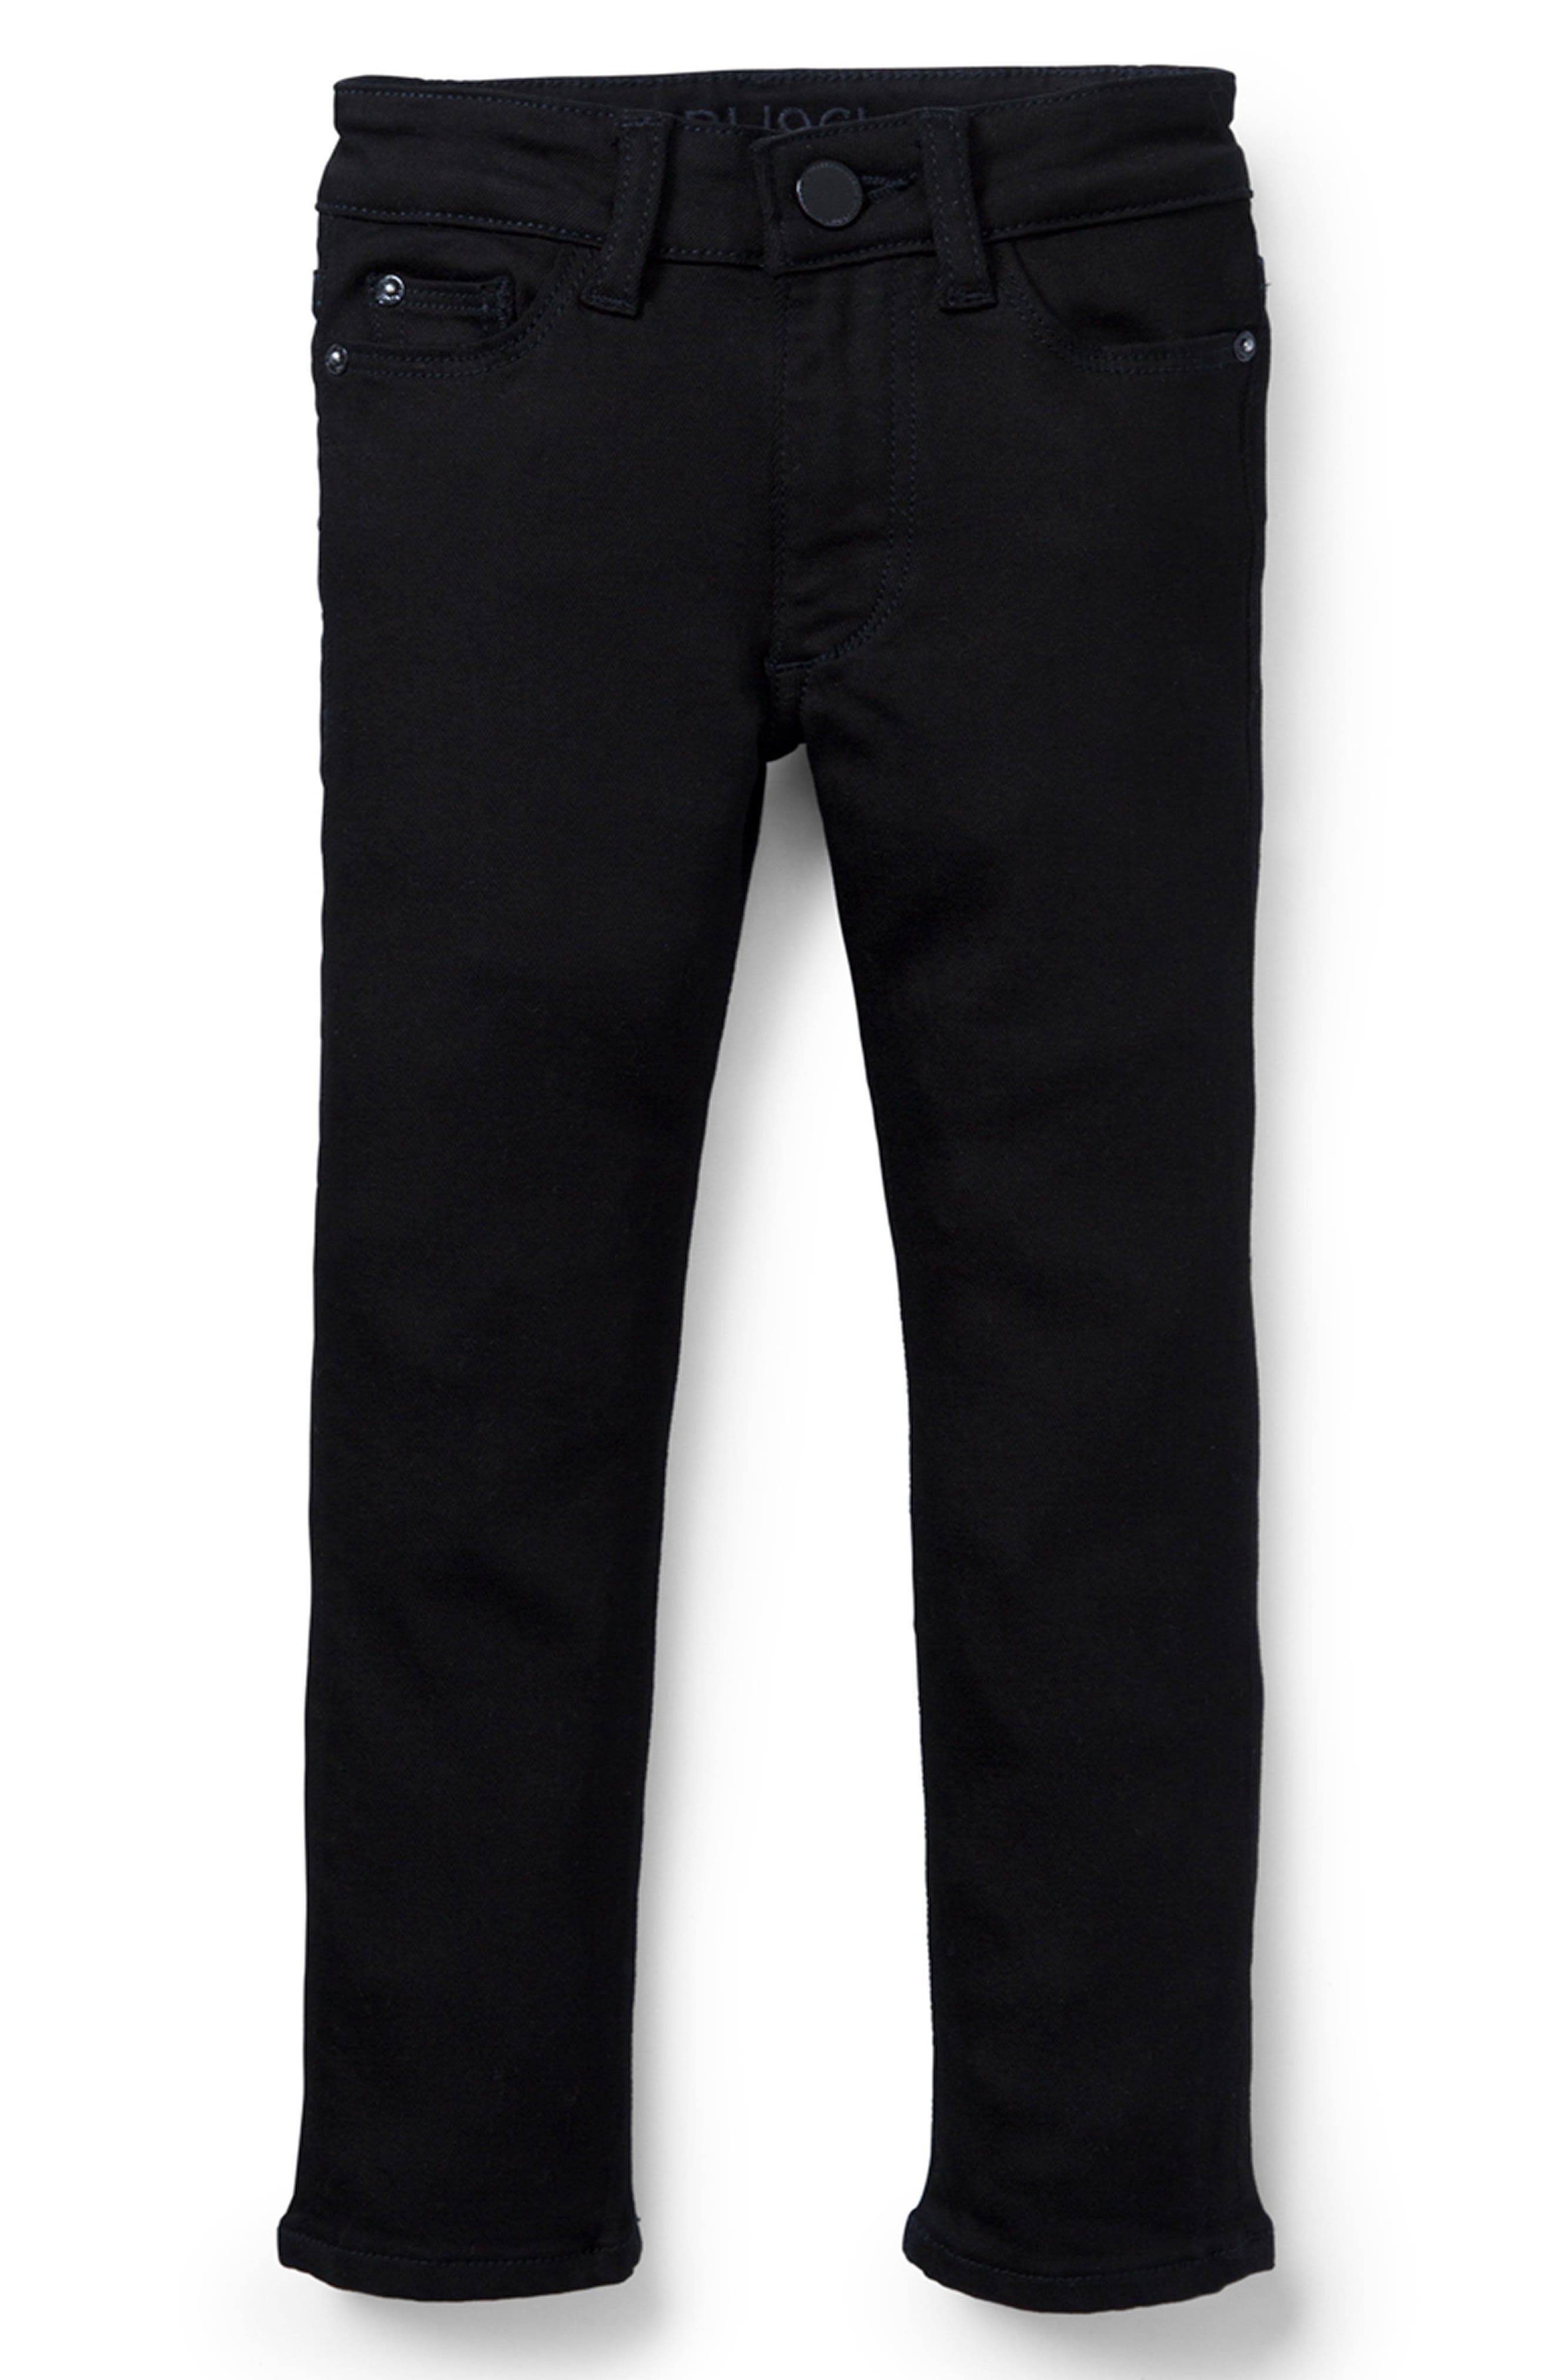 Main Image - DL1961 Stretch Skinny Jeans (Toddler Girls & Little Girls)